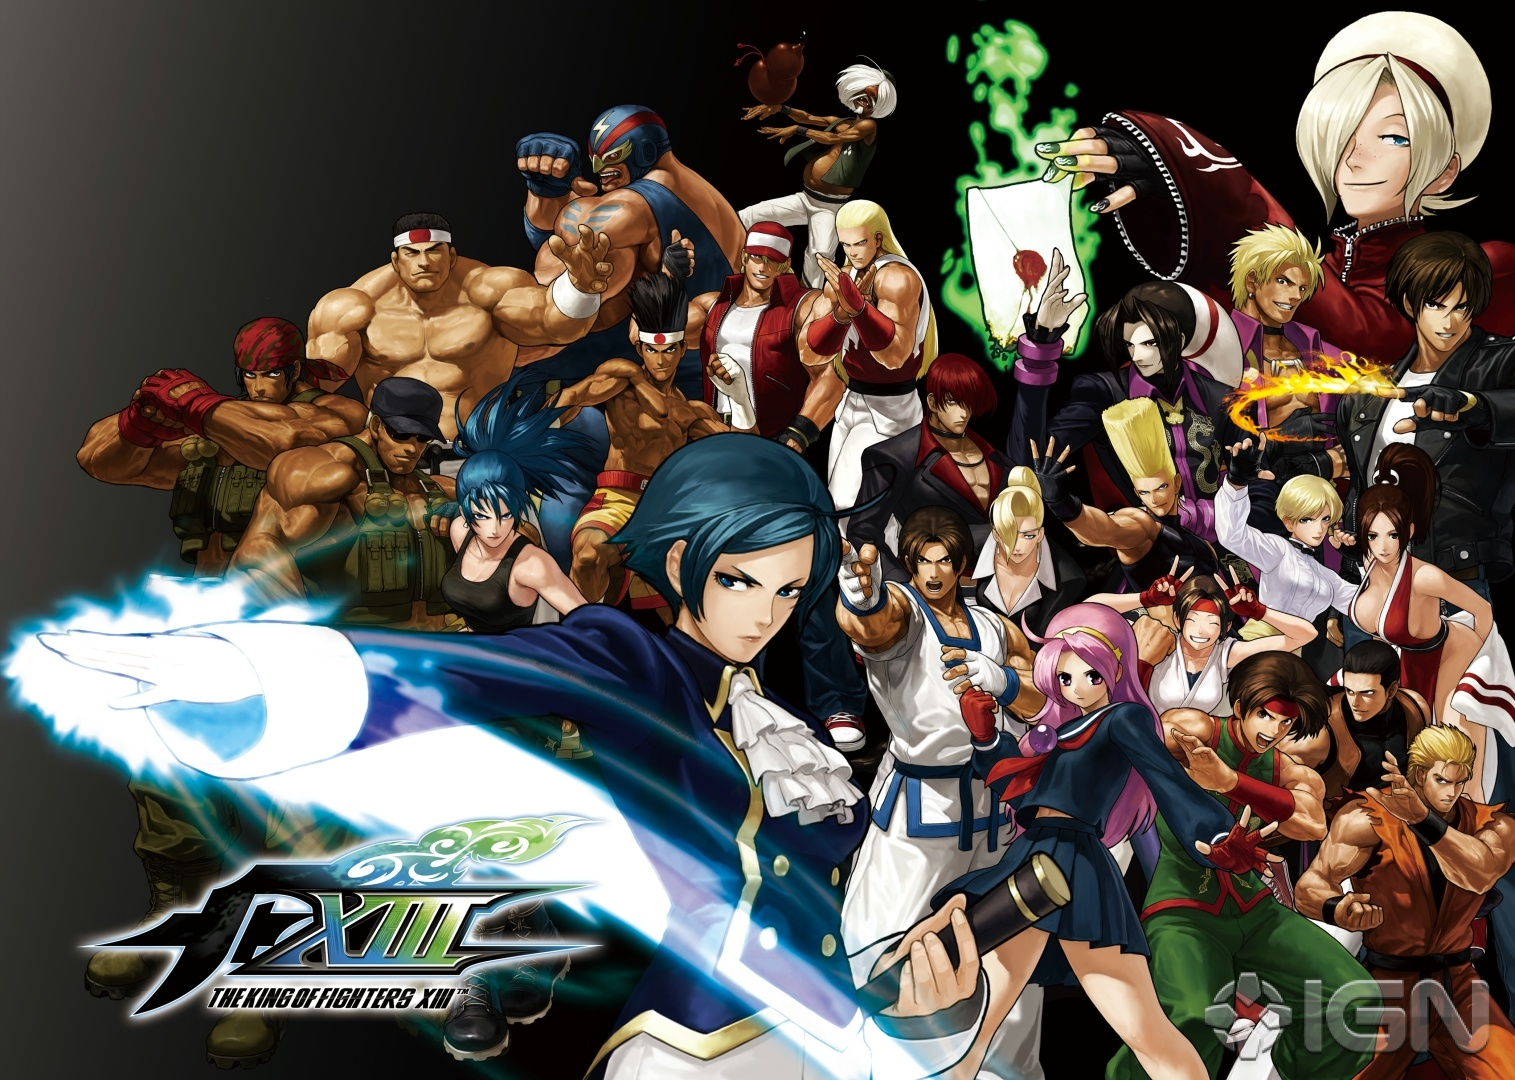 Free Download Pc Game King Of Fighter Xiii Full Rip Version